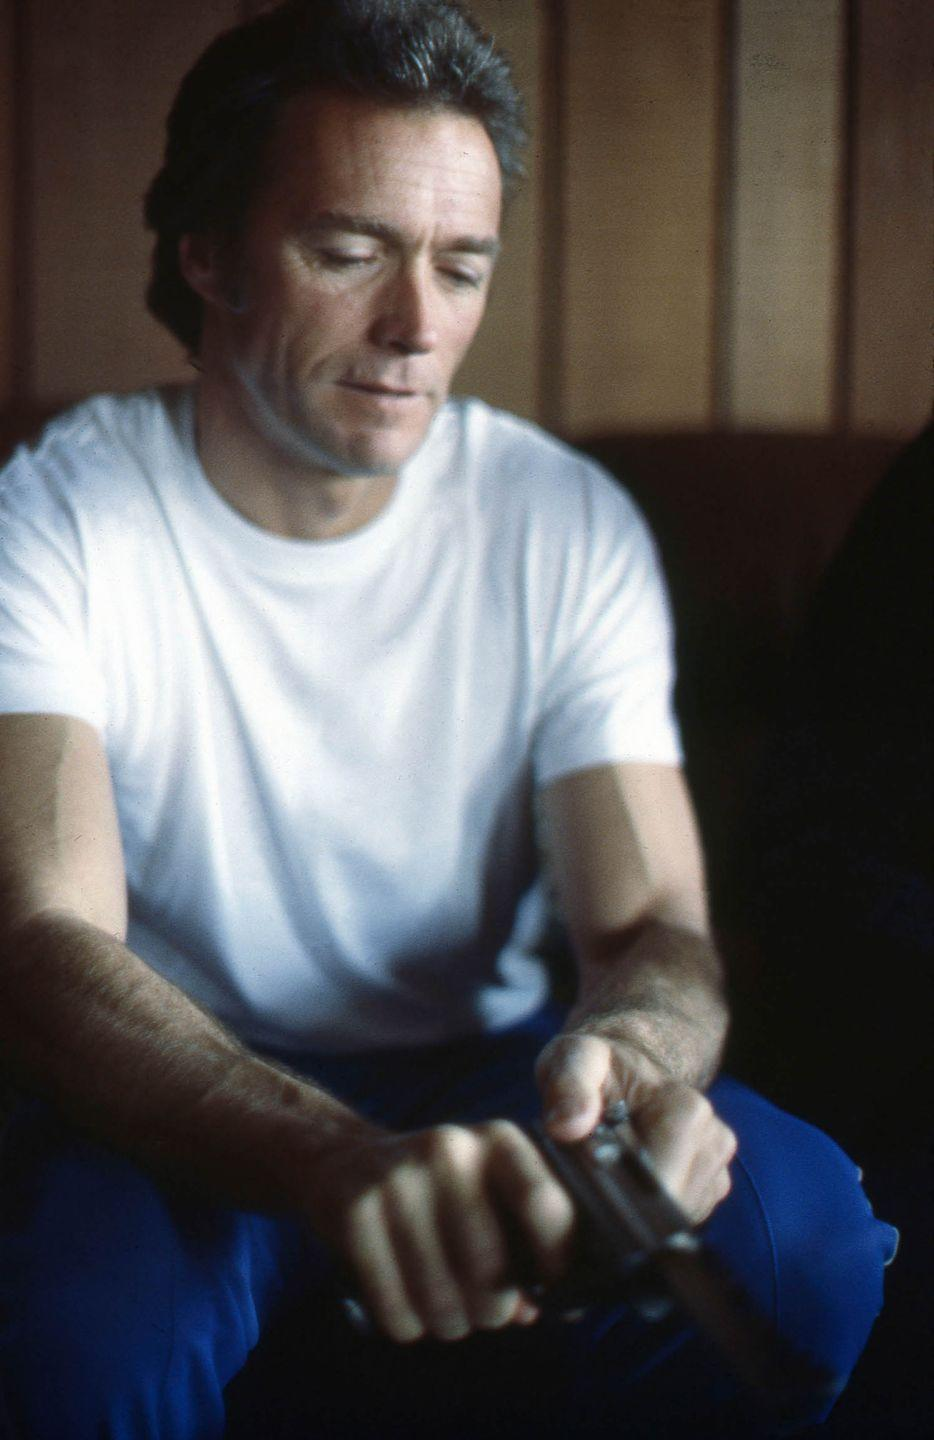 <p>Clint Eastwood holds a firearm at home in Pebble Beach in 1978.</p>